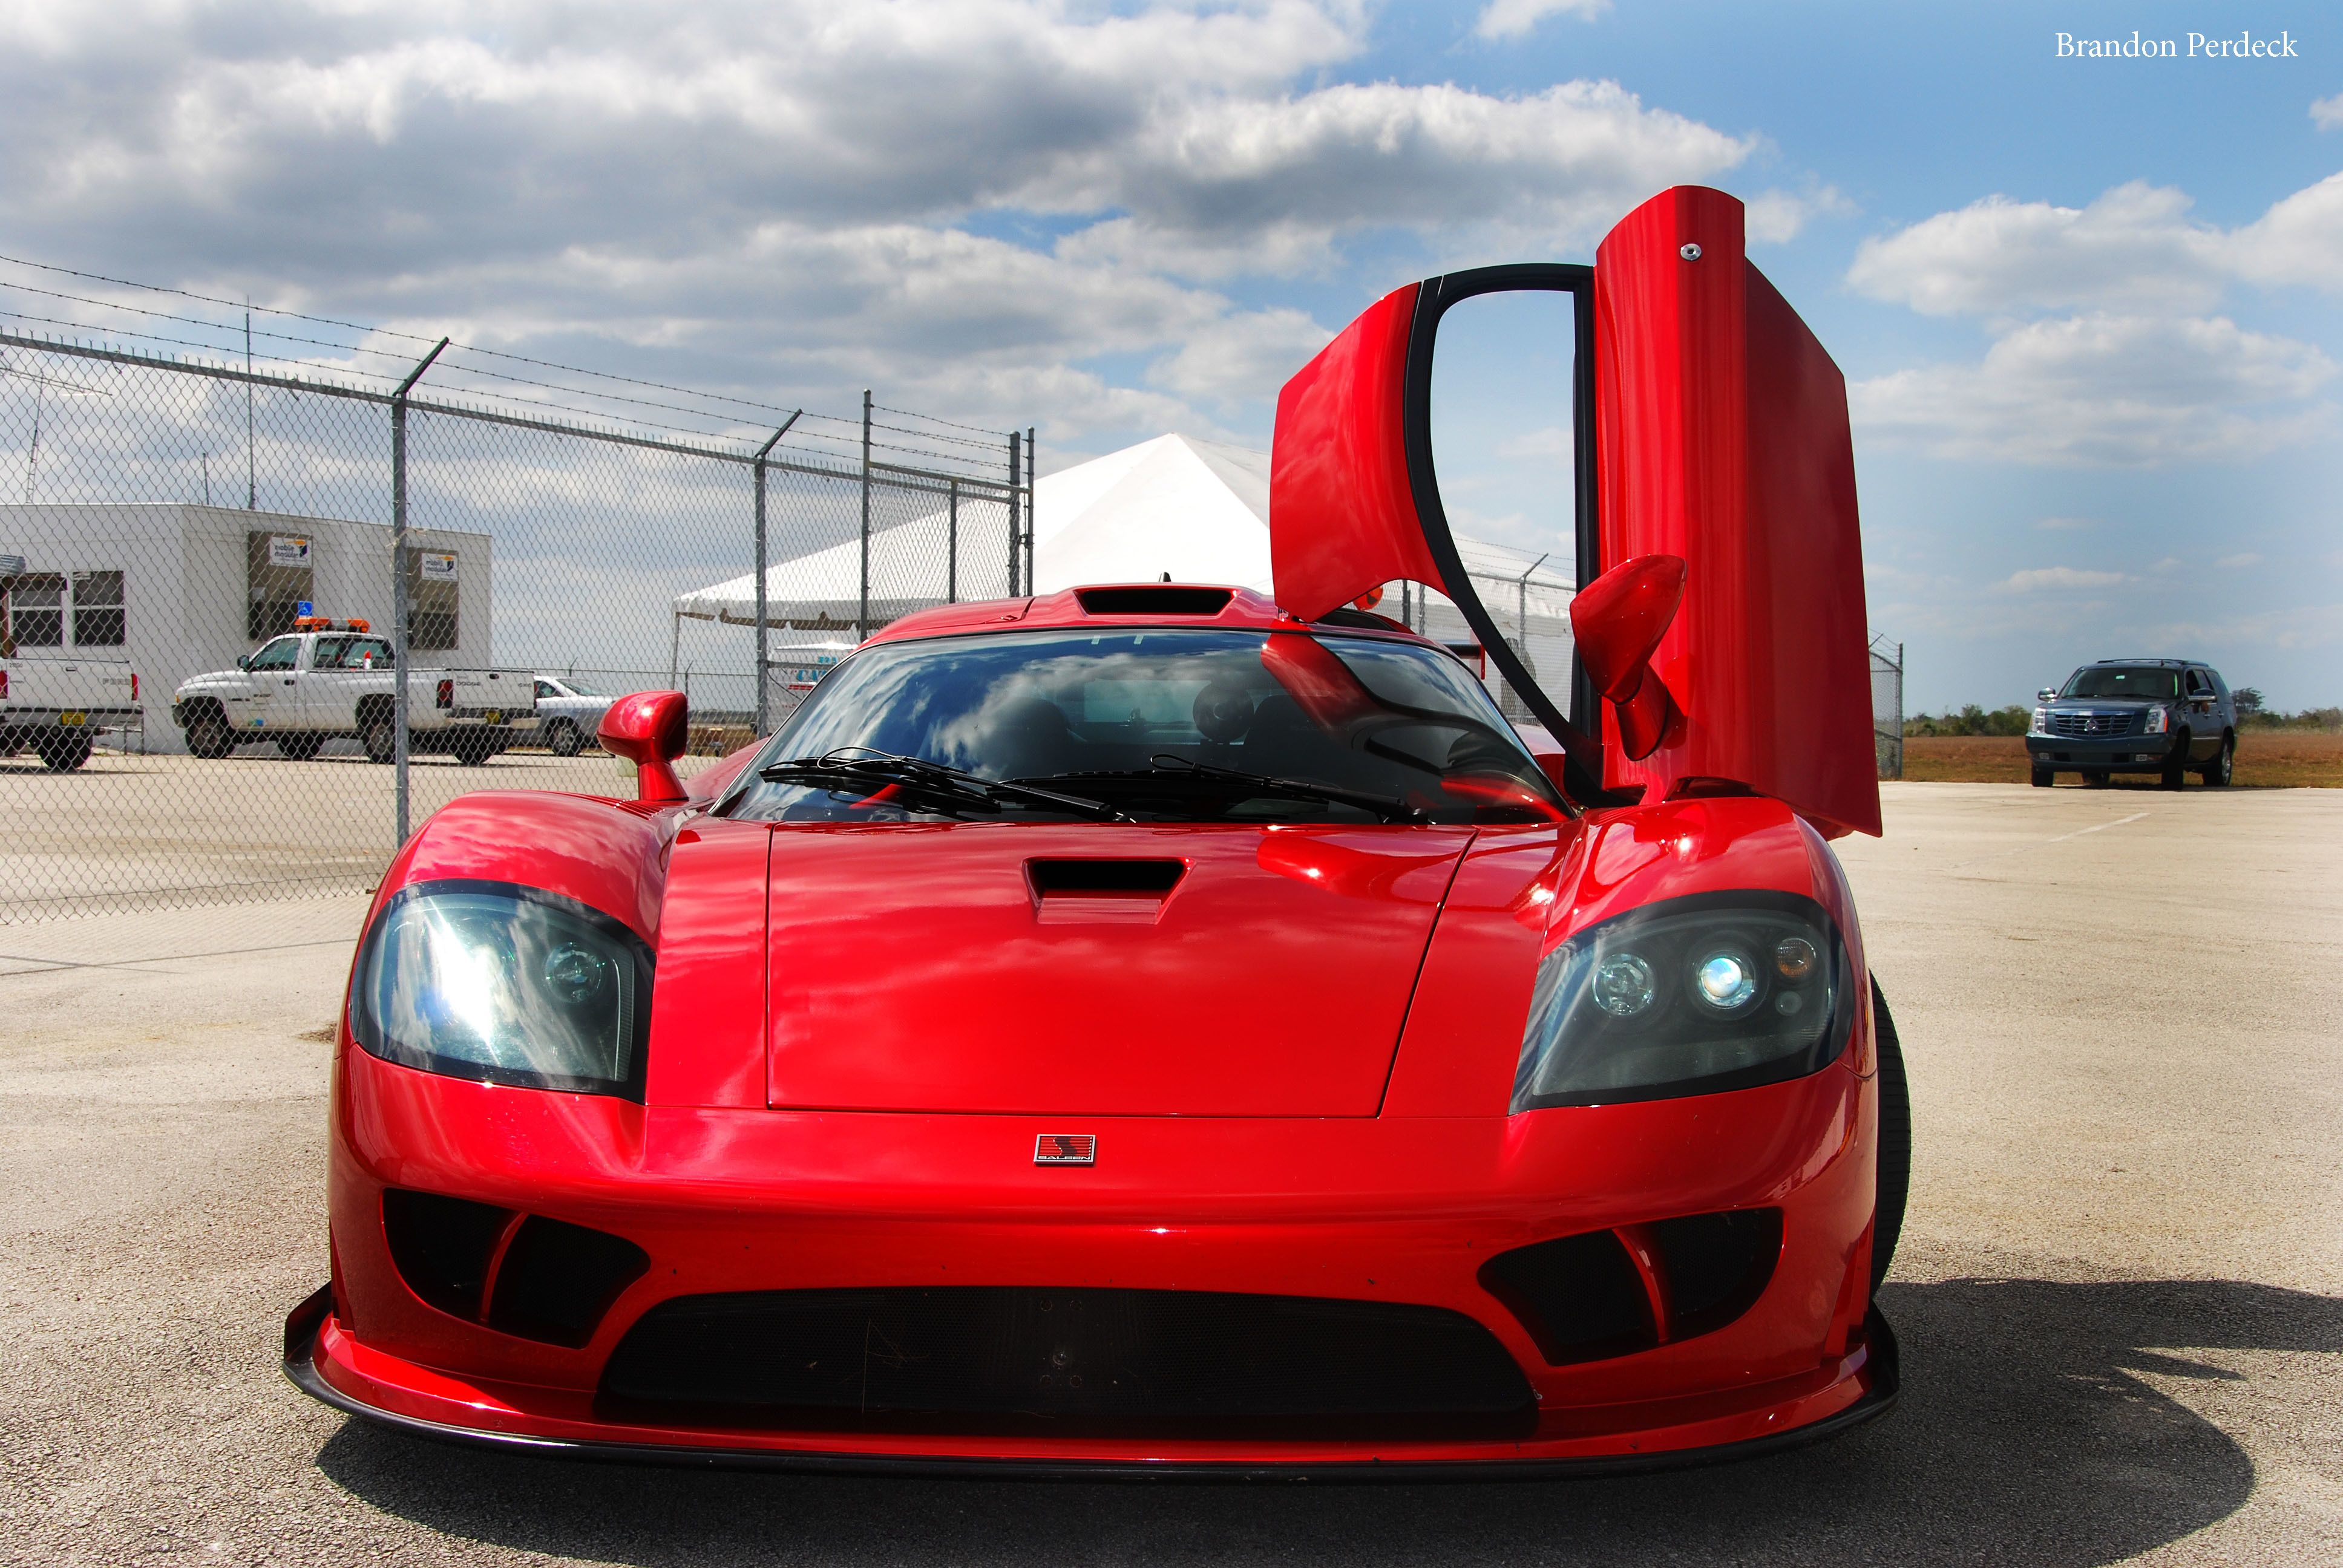 cars Saleen red cars HD Wallpaper